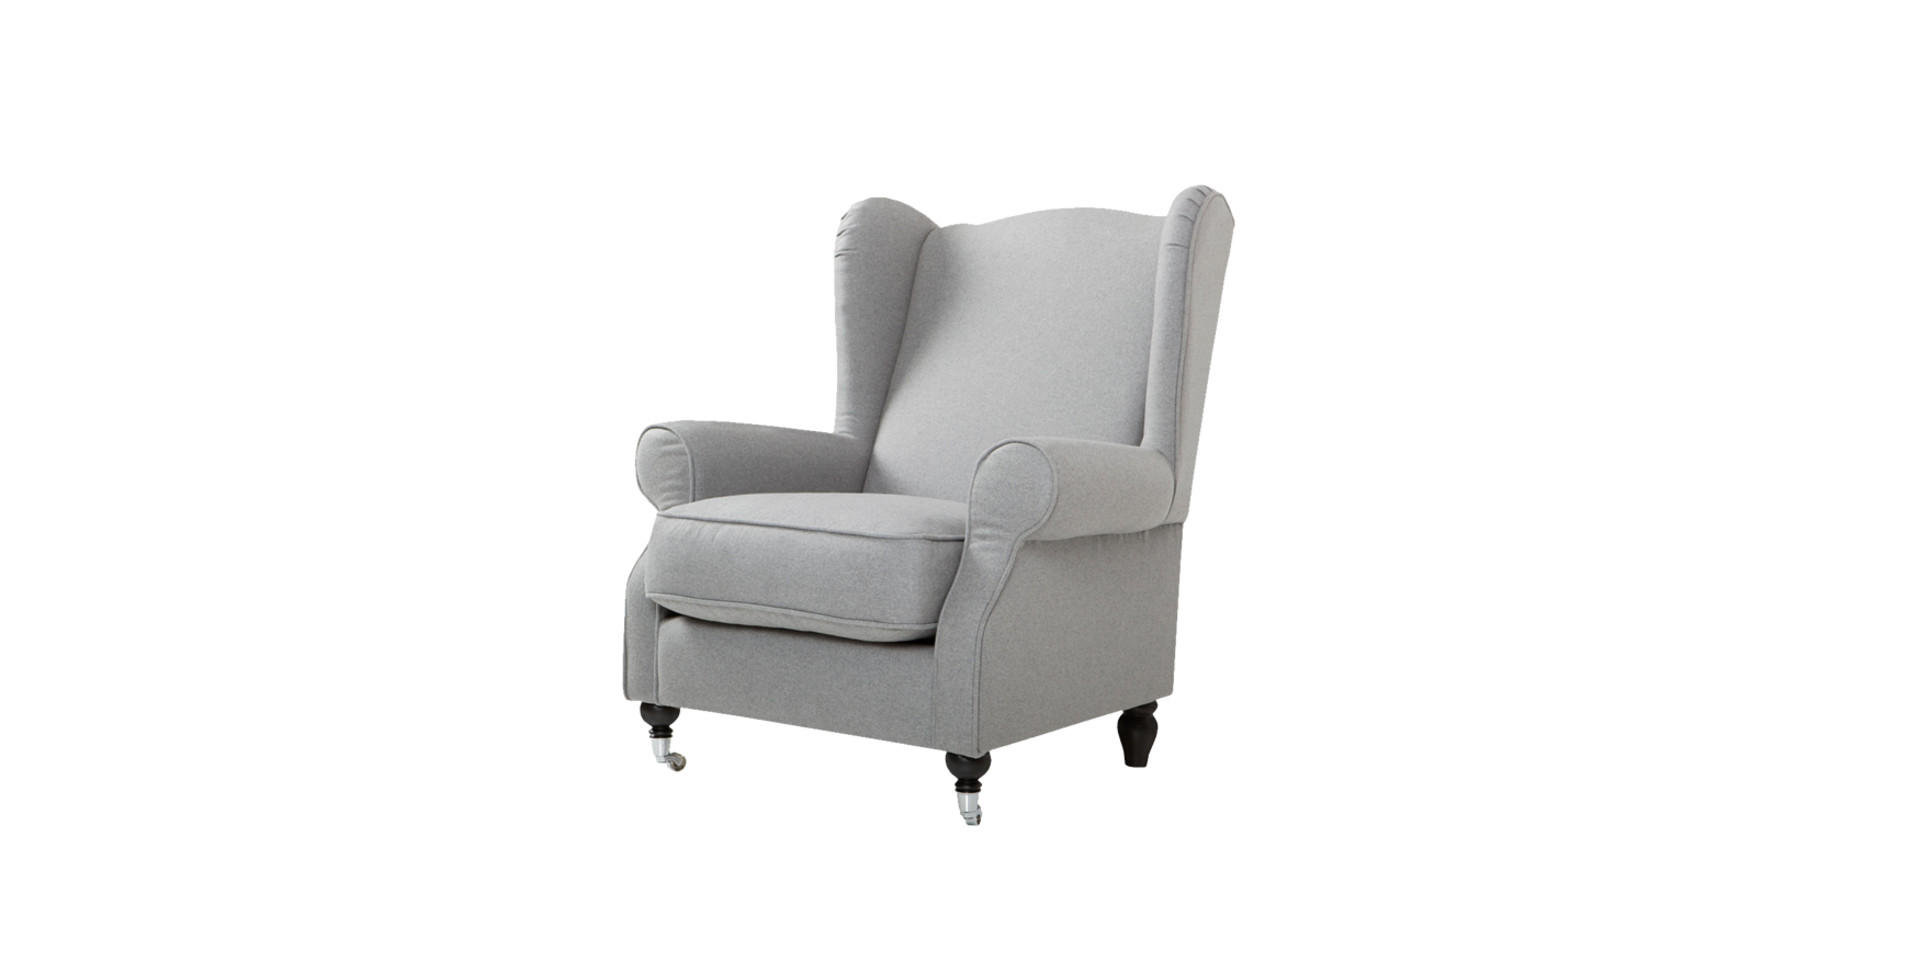 sits-humphrey-fauteuil-armchair_high_panno1000_light_grey_4